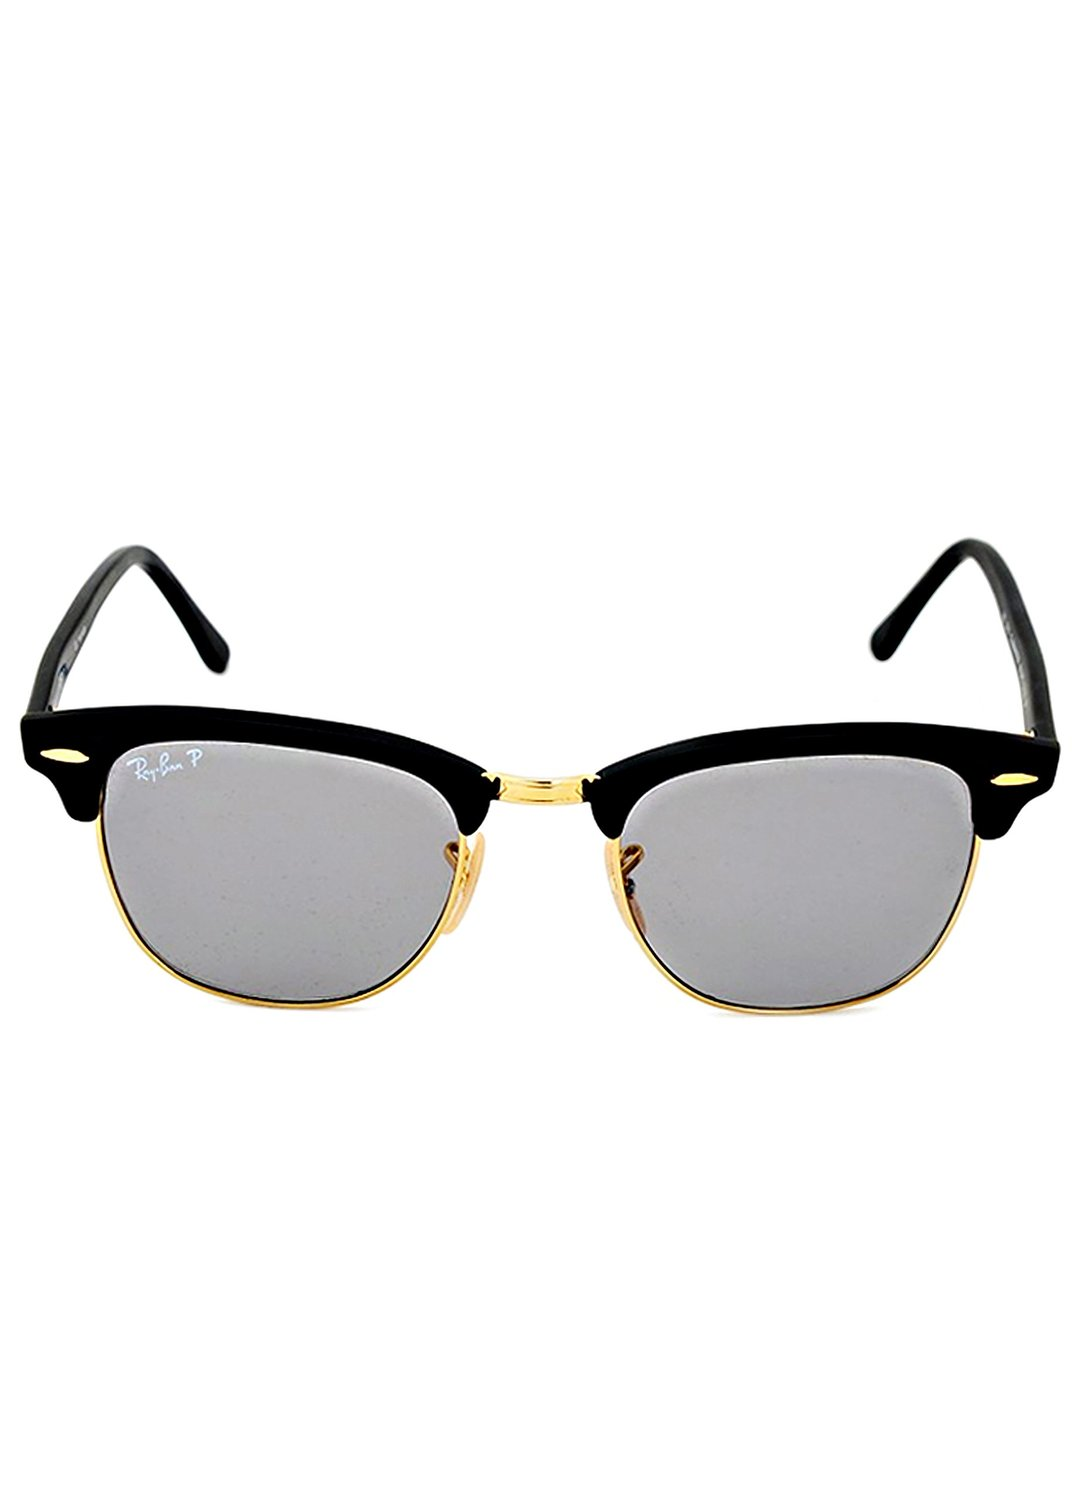 c9257b7d40 Ray Ban Rb3016 Clubmaster Amazon « Heritage Malta